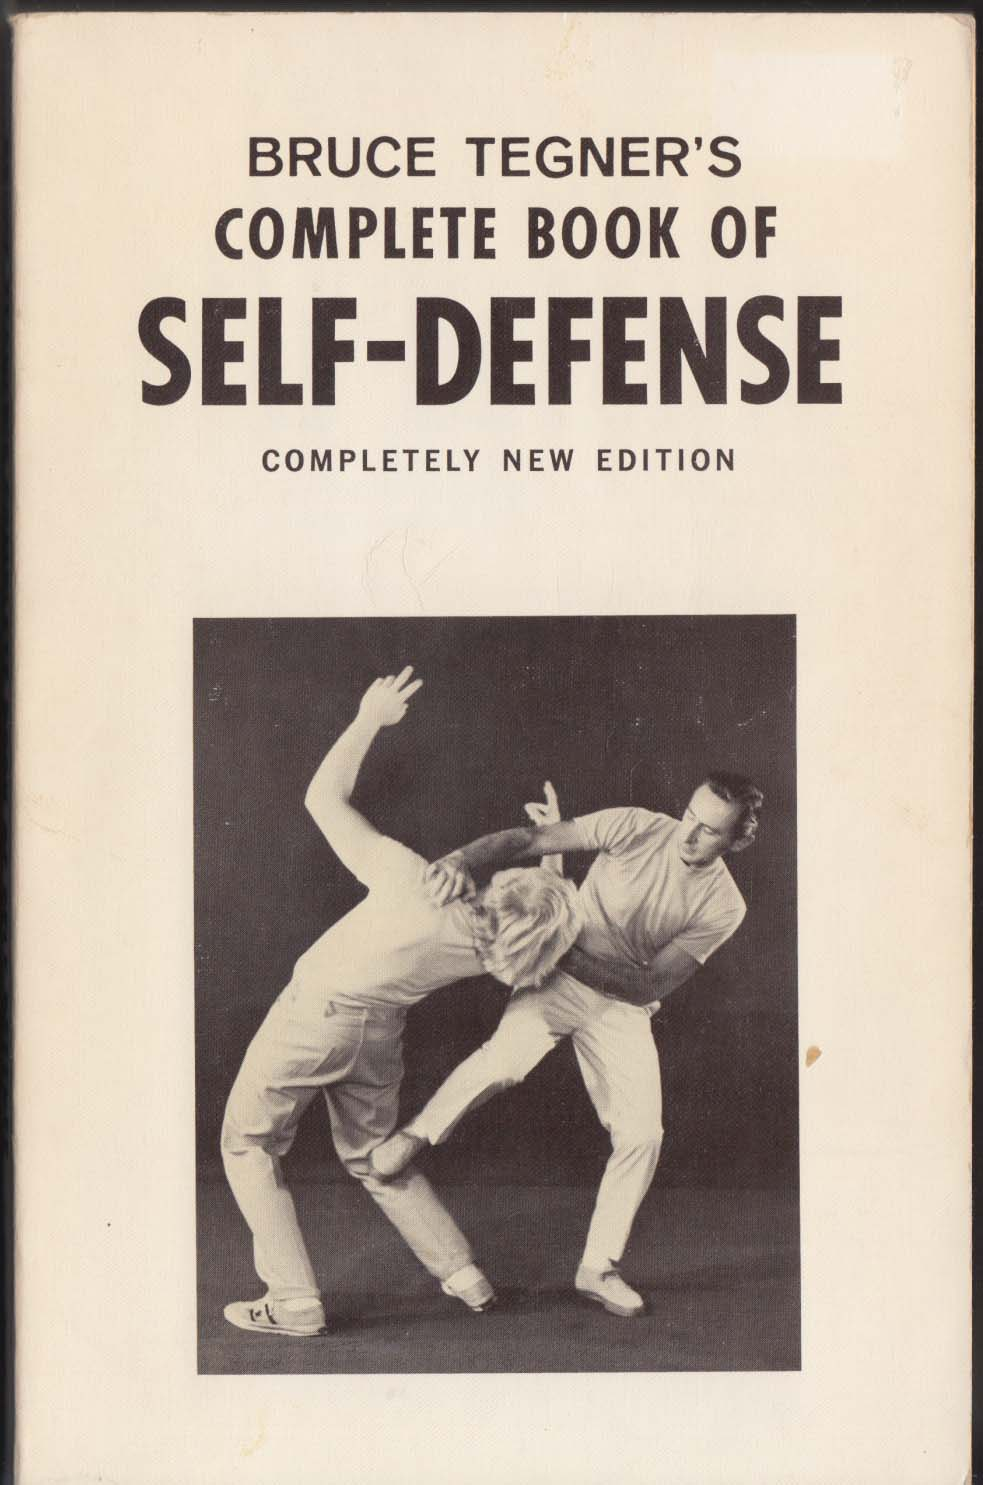 Bruce Tegner's Complete Book of Self-Defense Completely New Edition 1975